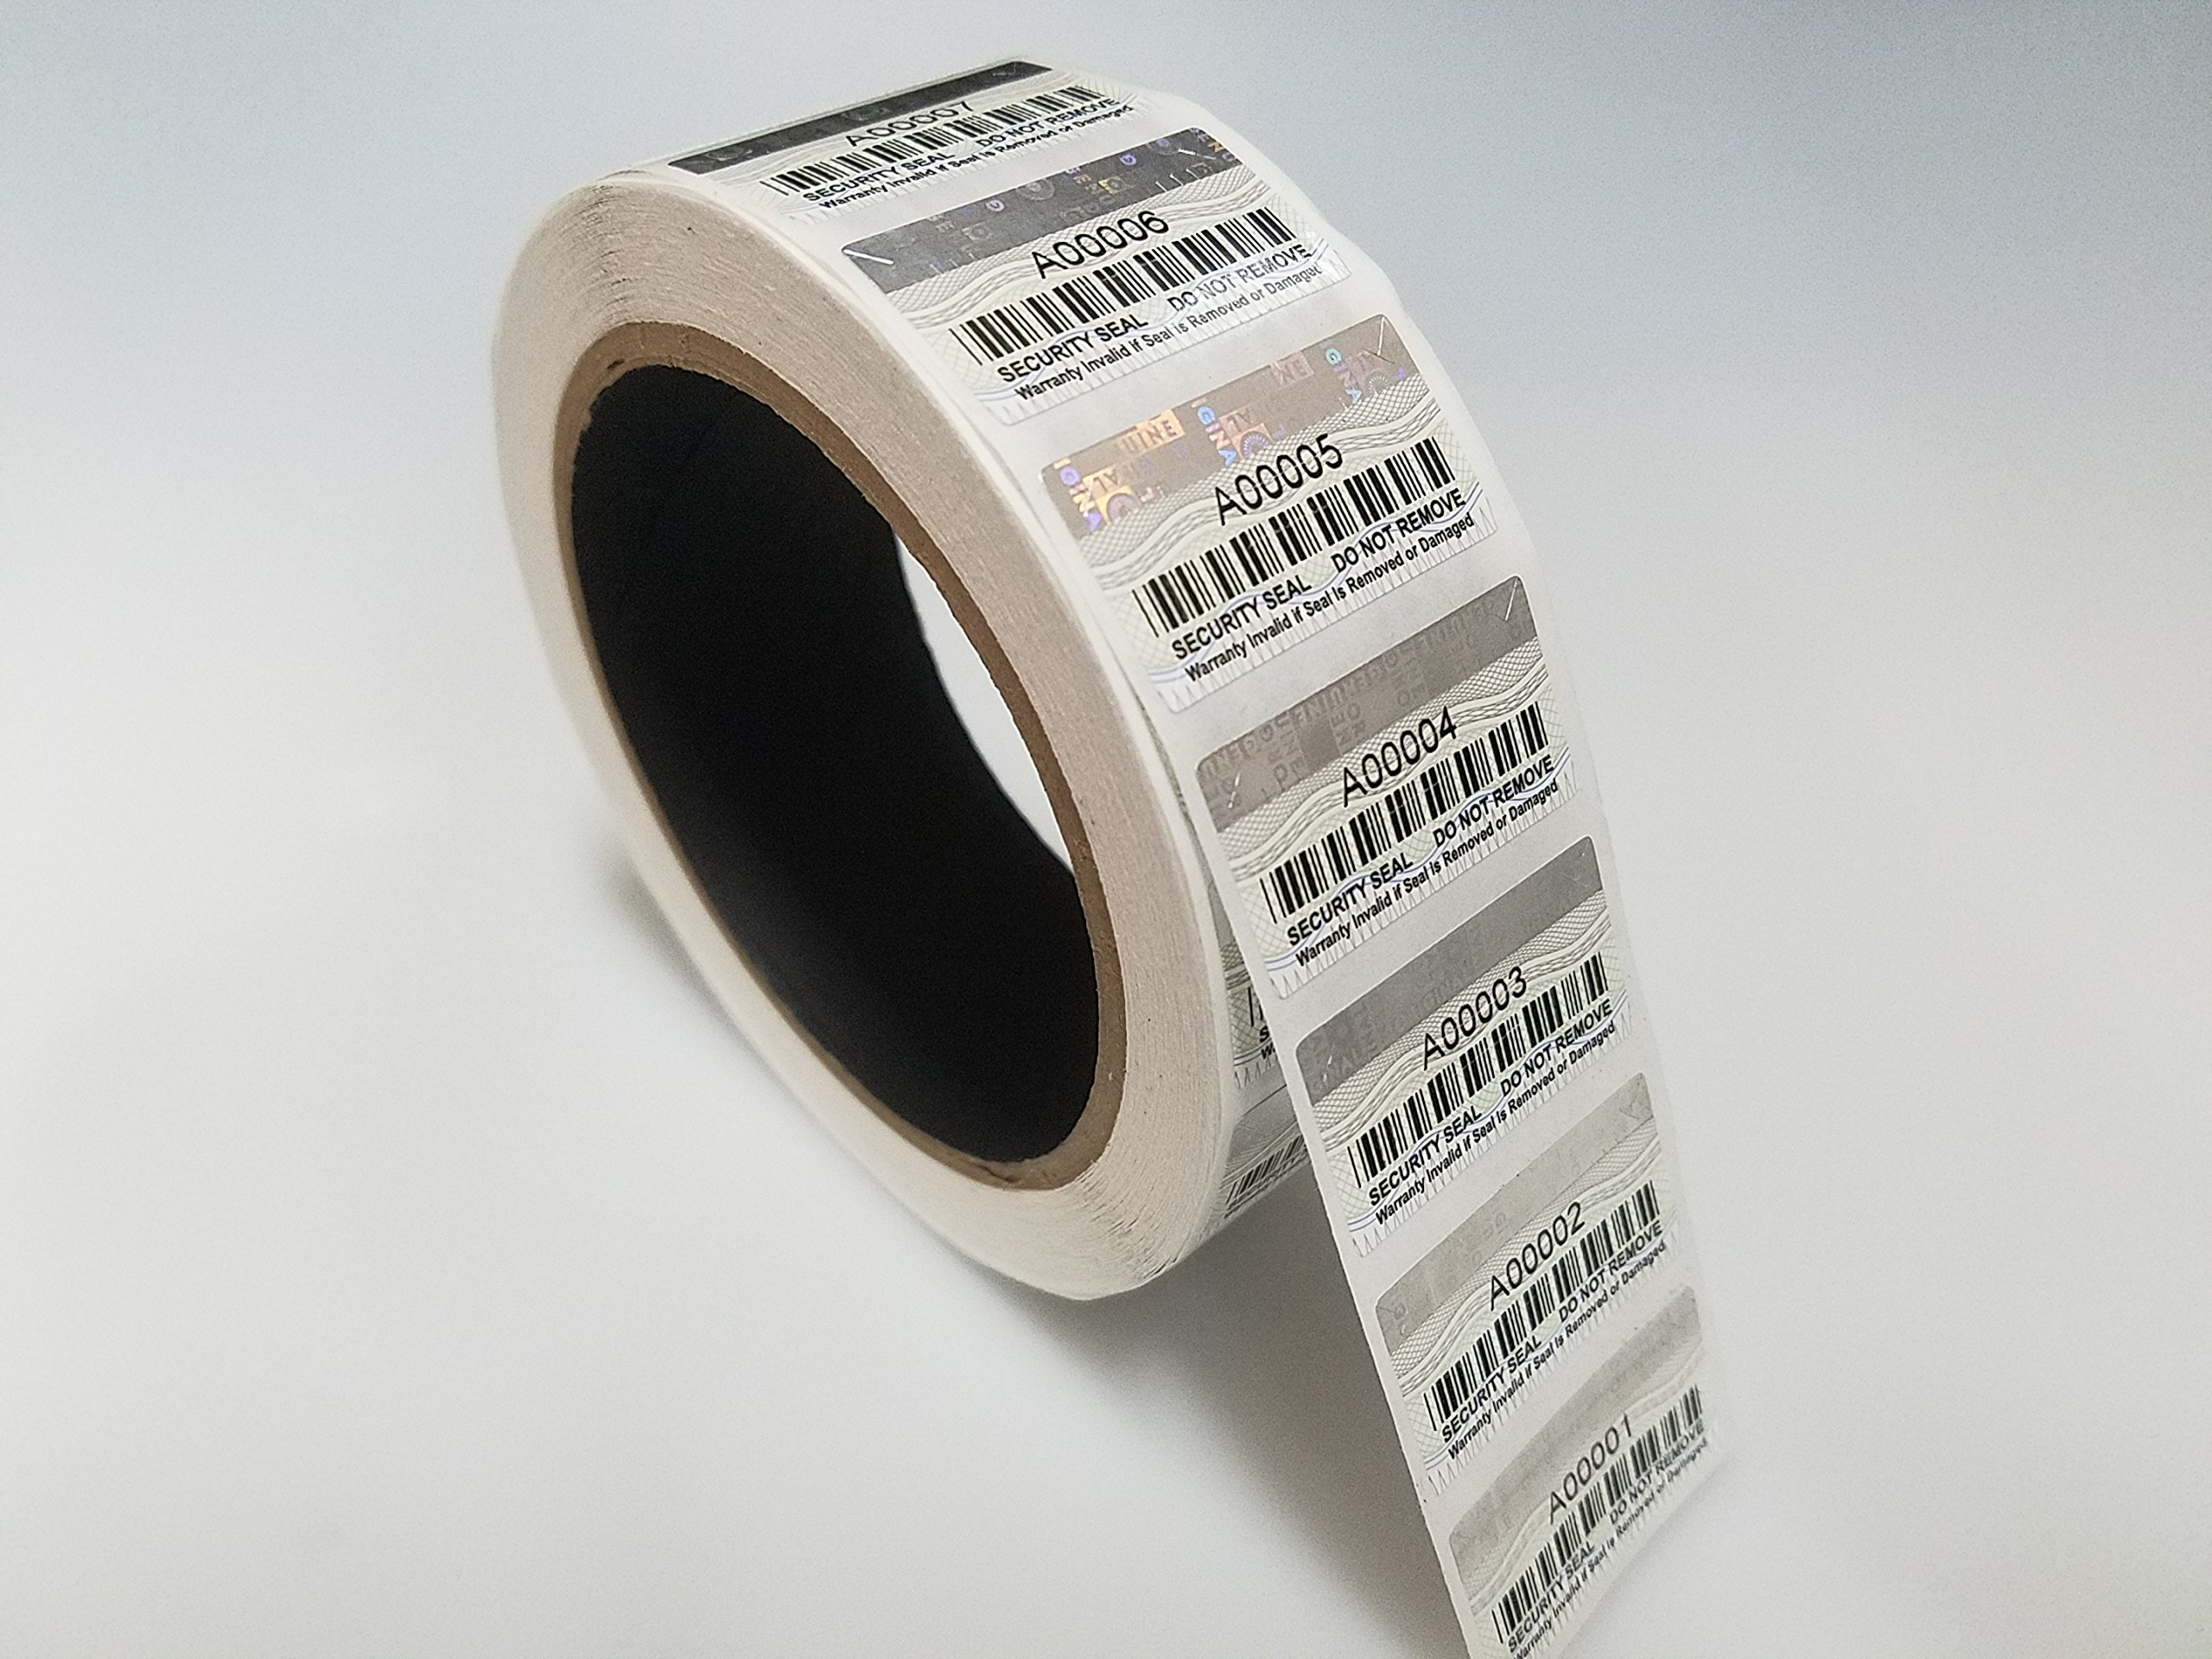 1000 High Security with Hologram Destructible Sticker 34mm x 18mm Labels with Consecutive Numbering and Barcode